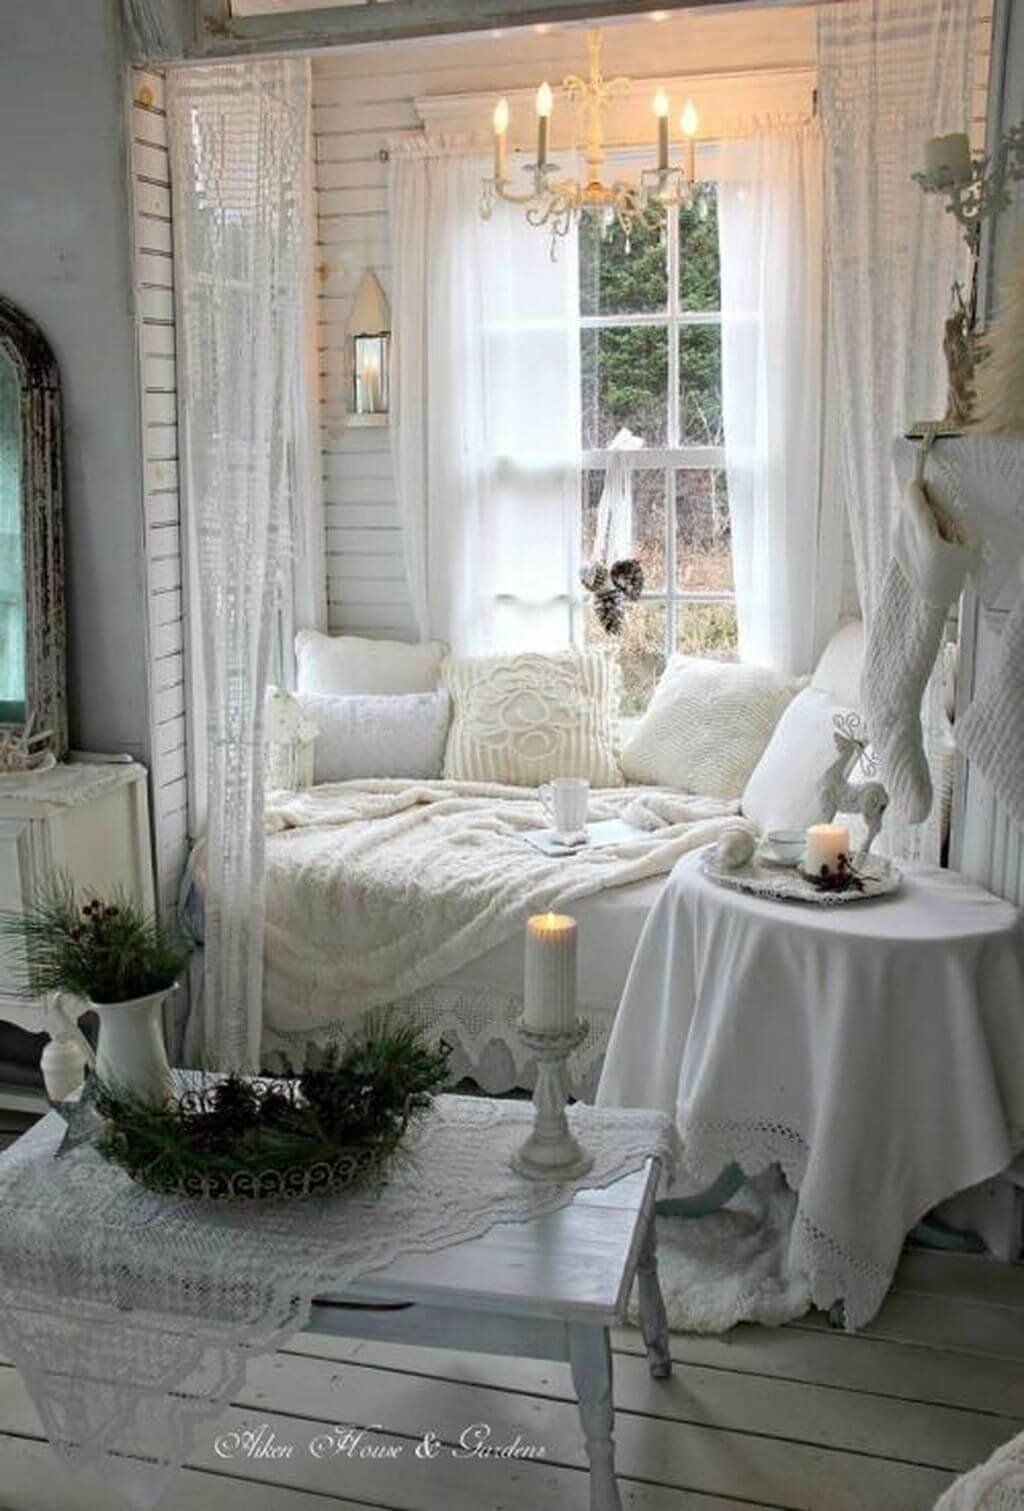 25 Fashionable Shabby Chic Bedroom (All Are Stylish!) - Q20